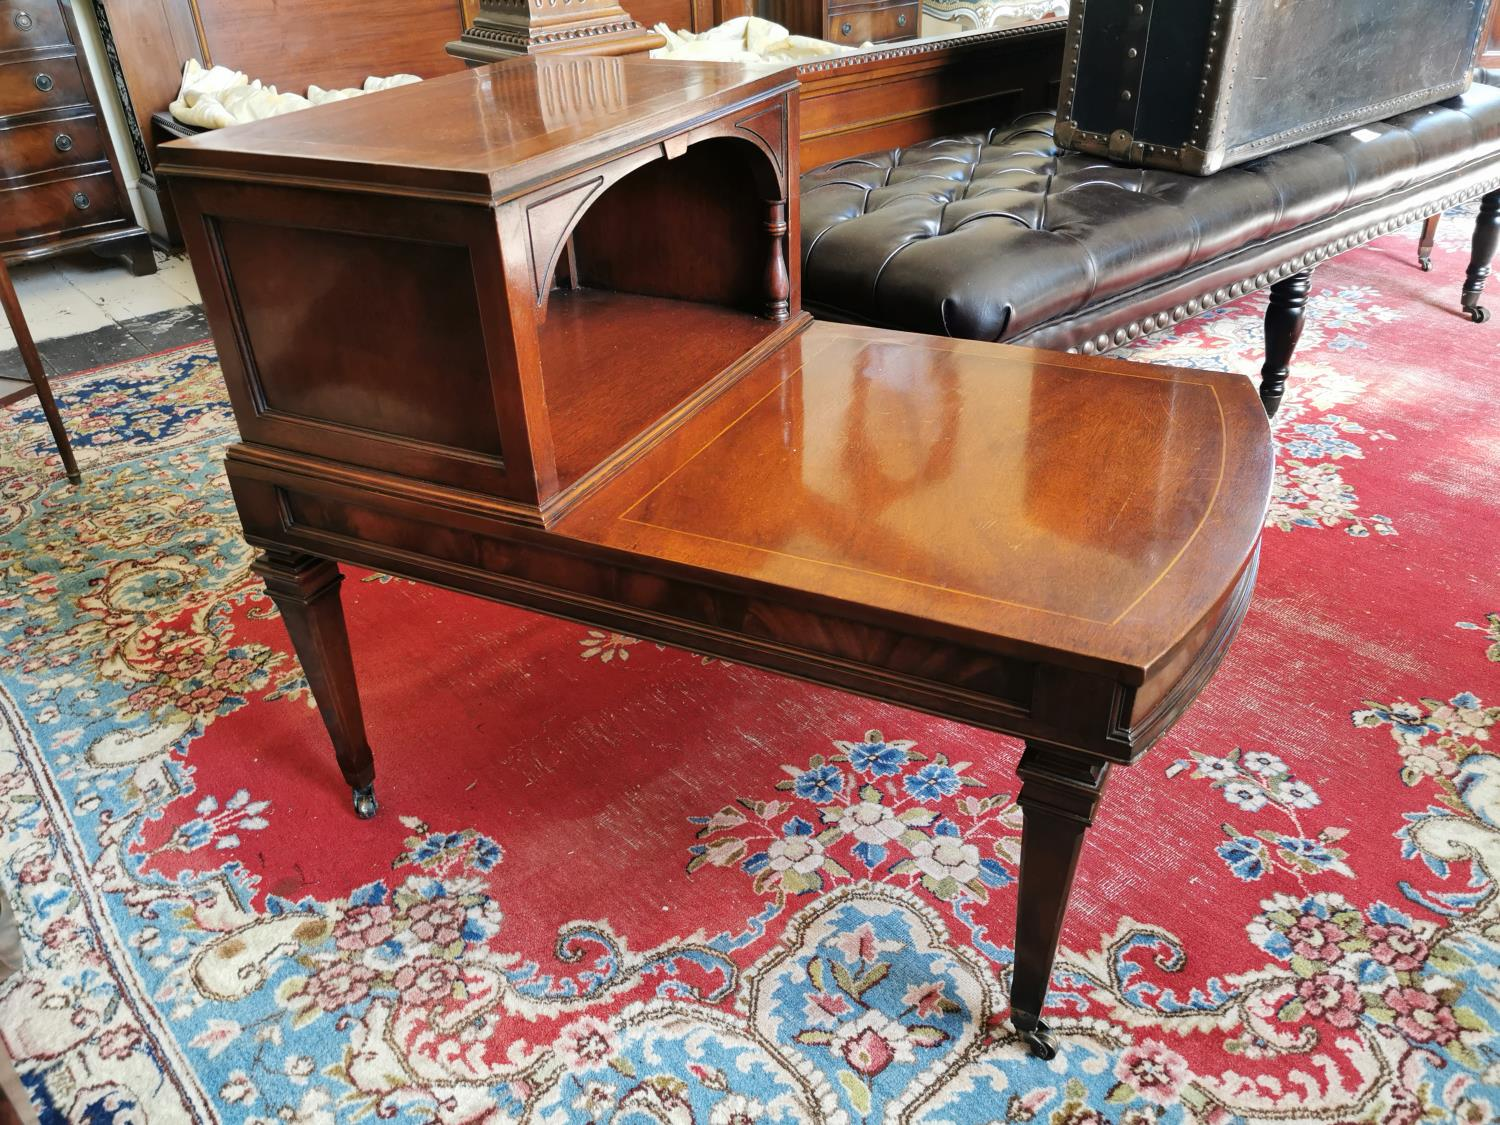 Pair of satinwood bedside seats. - Image 2 of 2